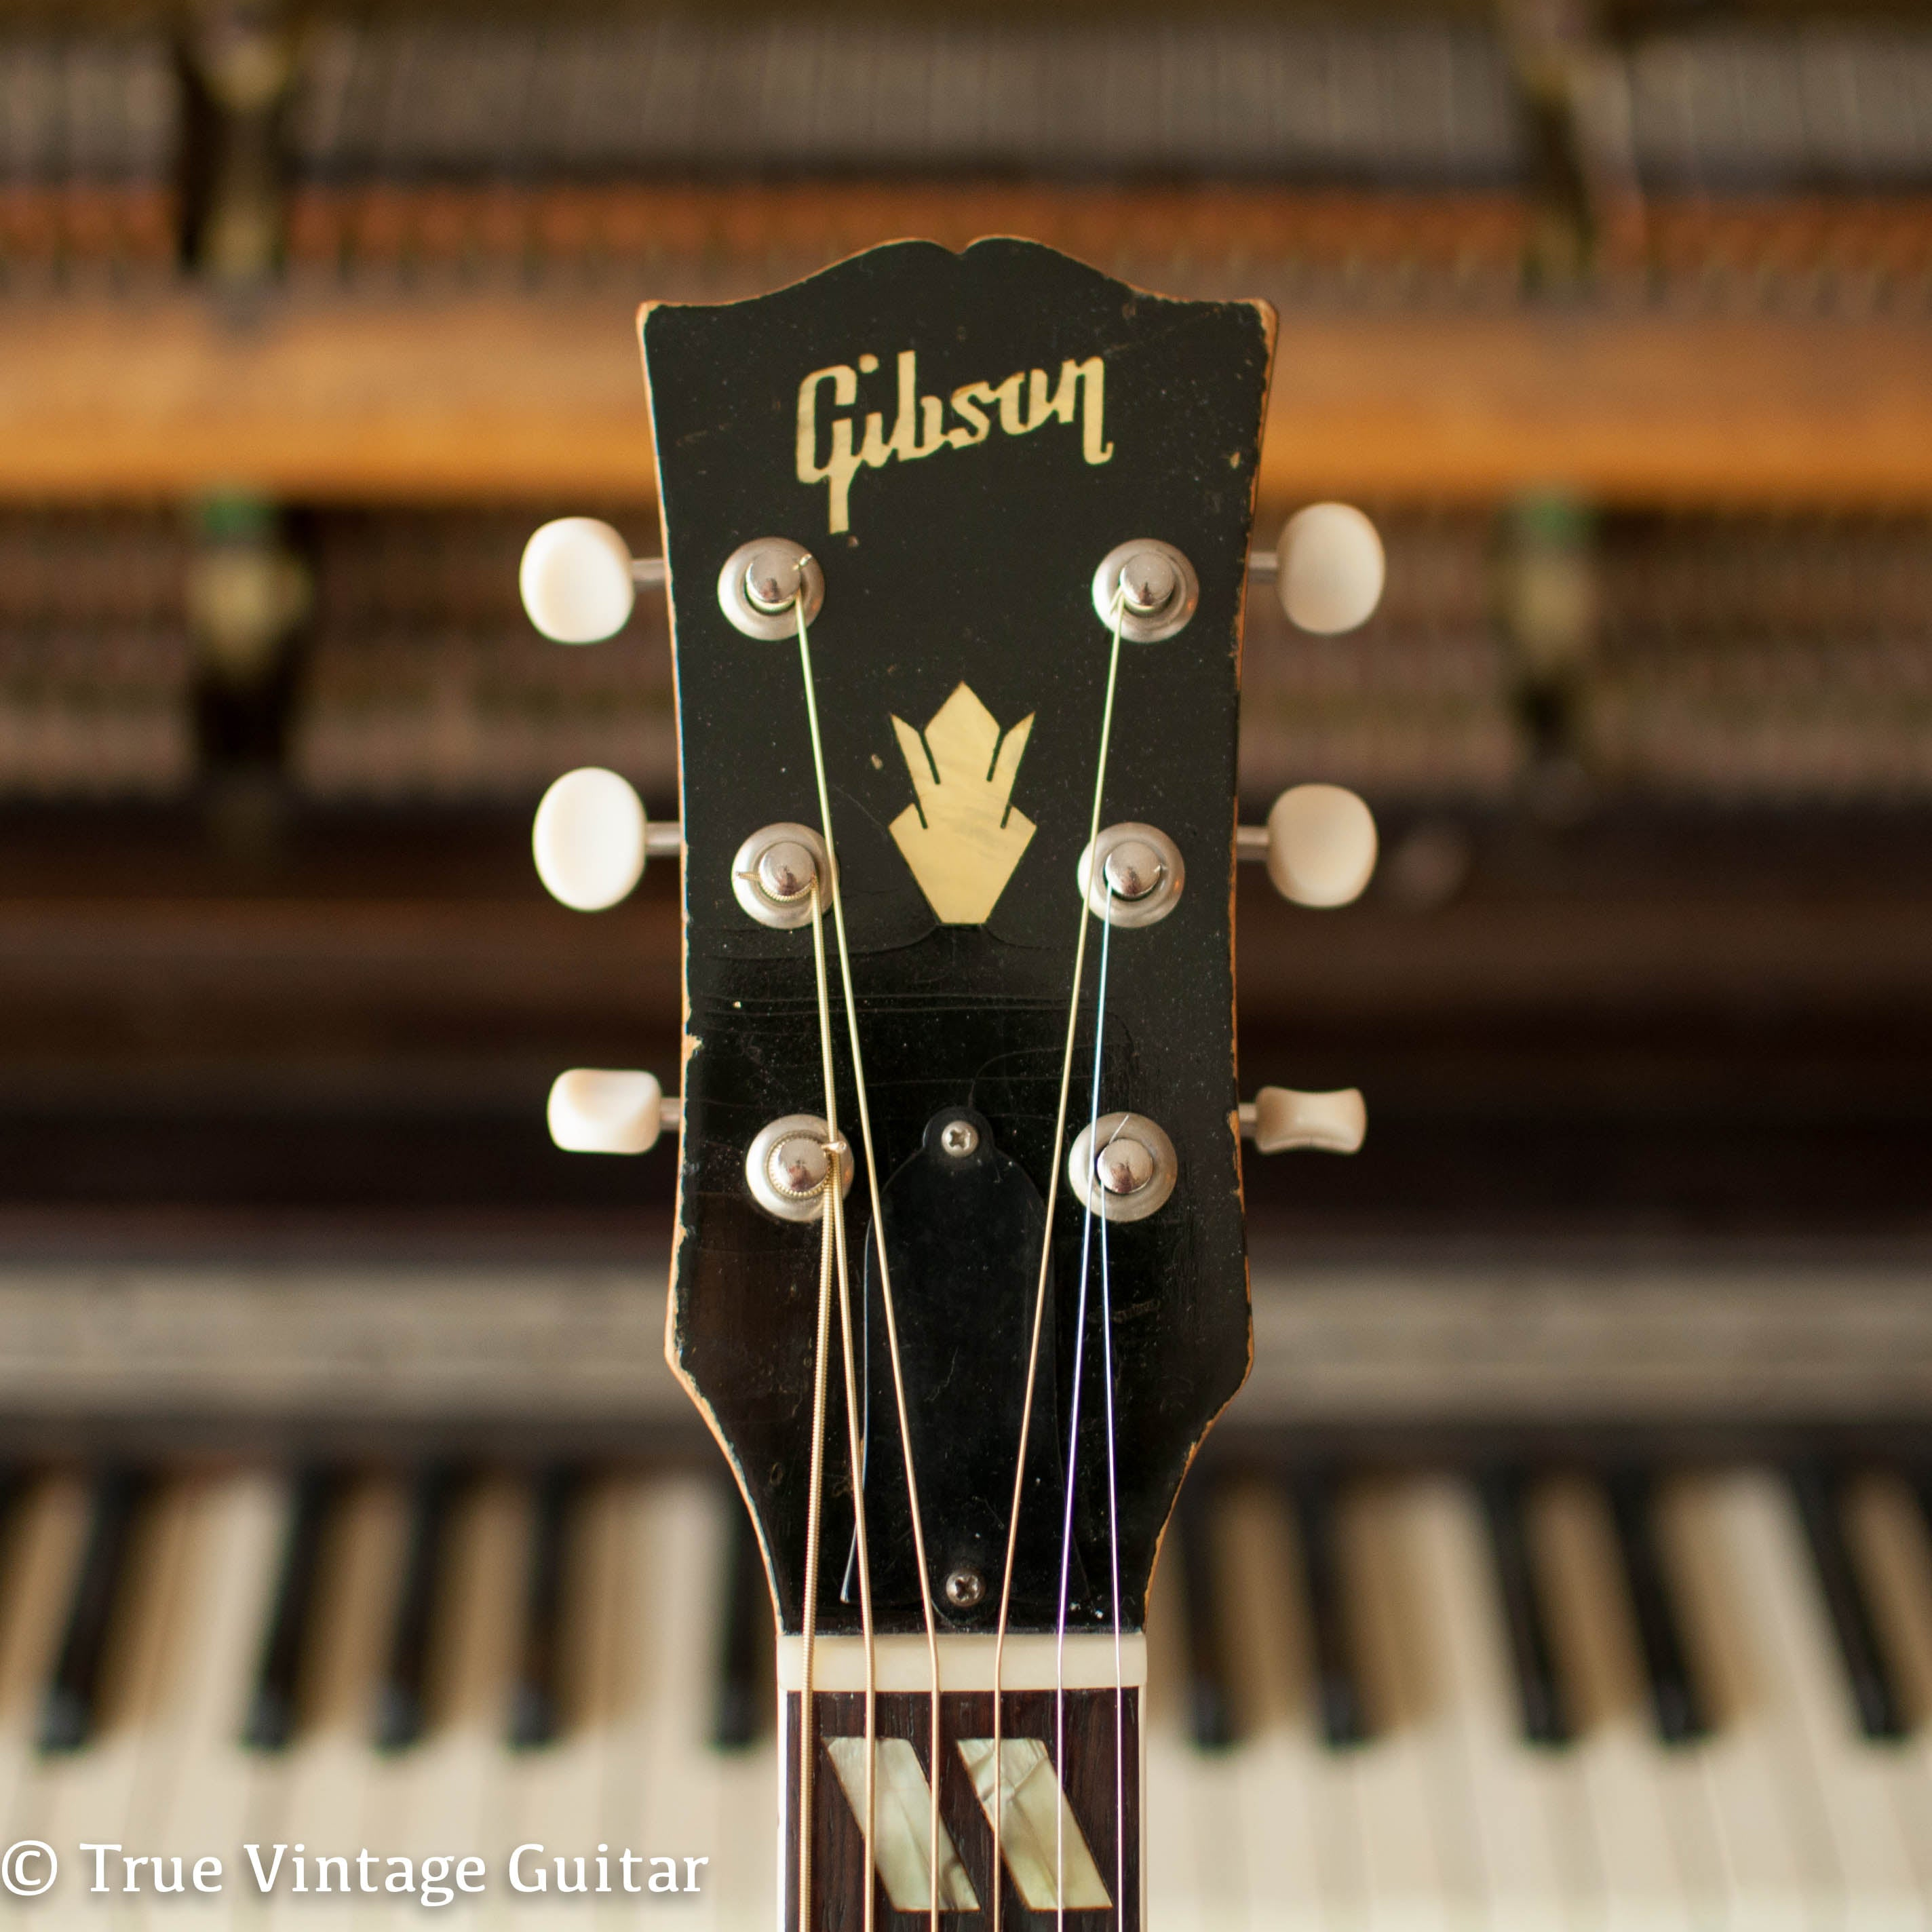 Gibson headstock pearl inlay 1957 Country Western